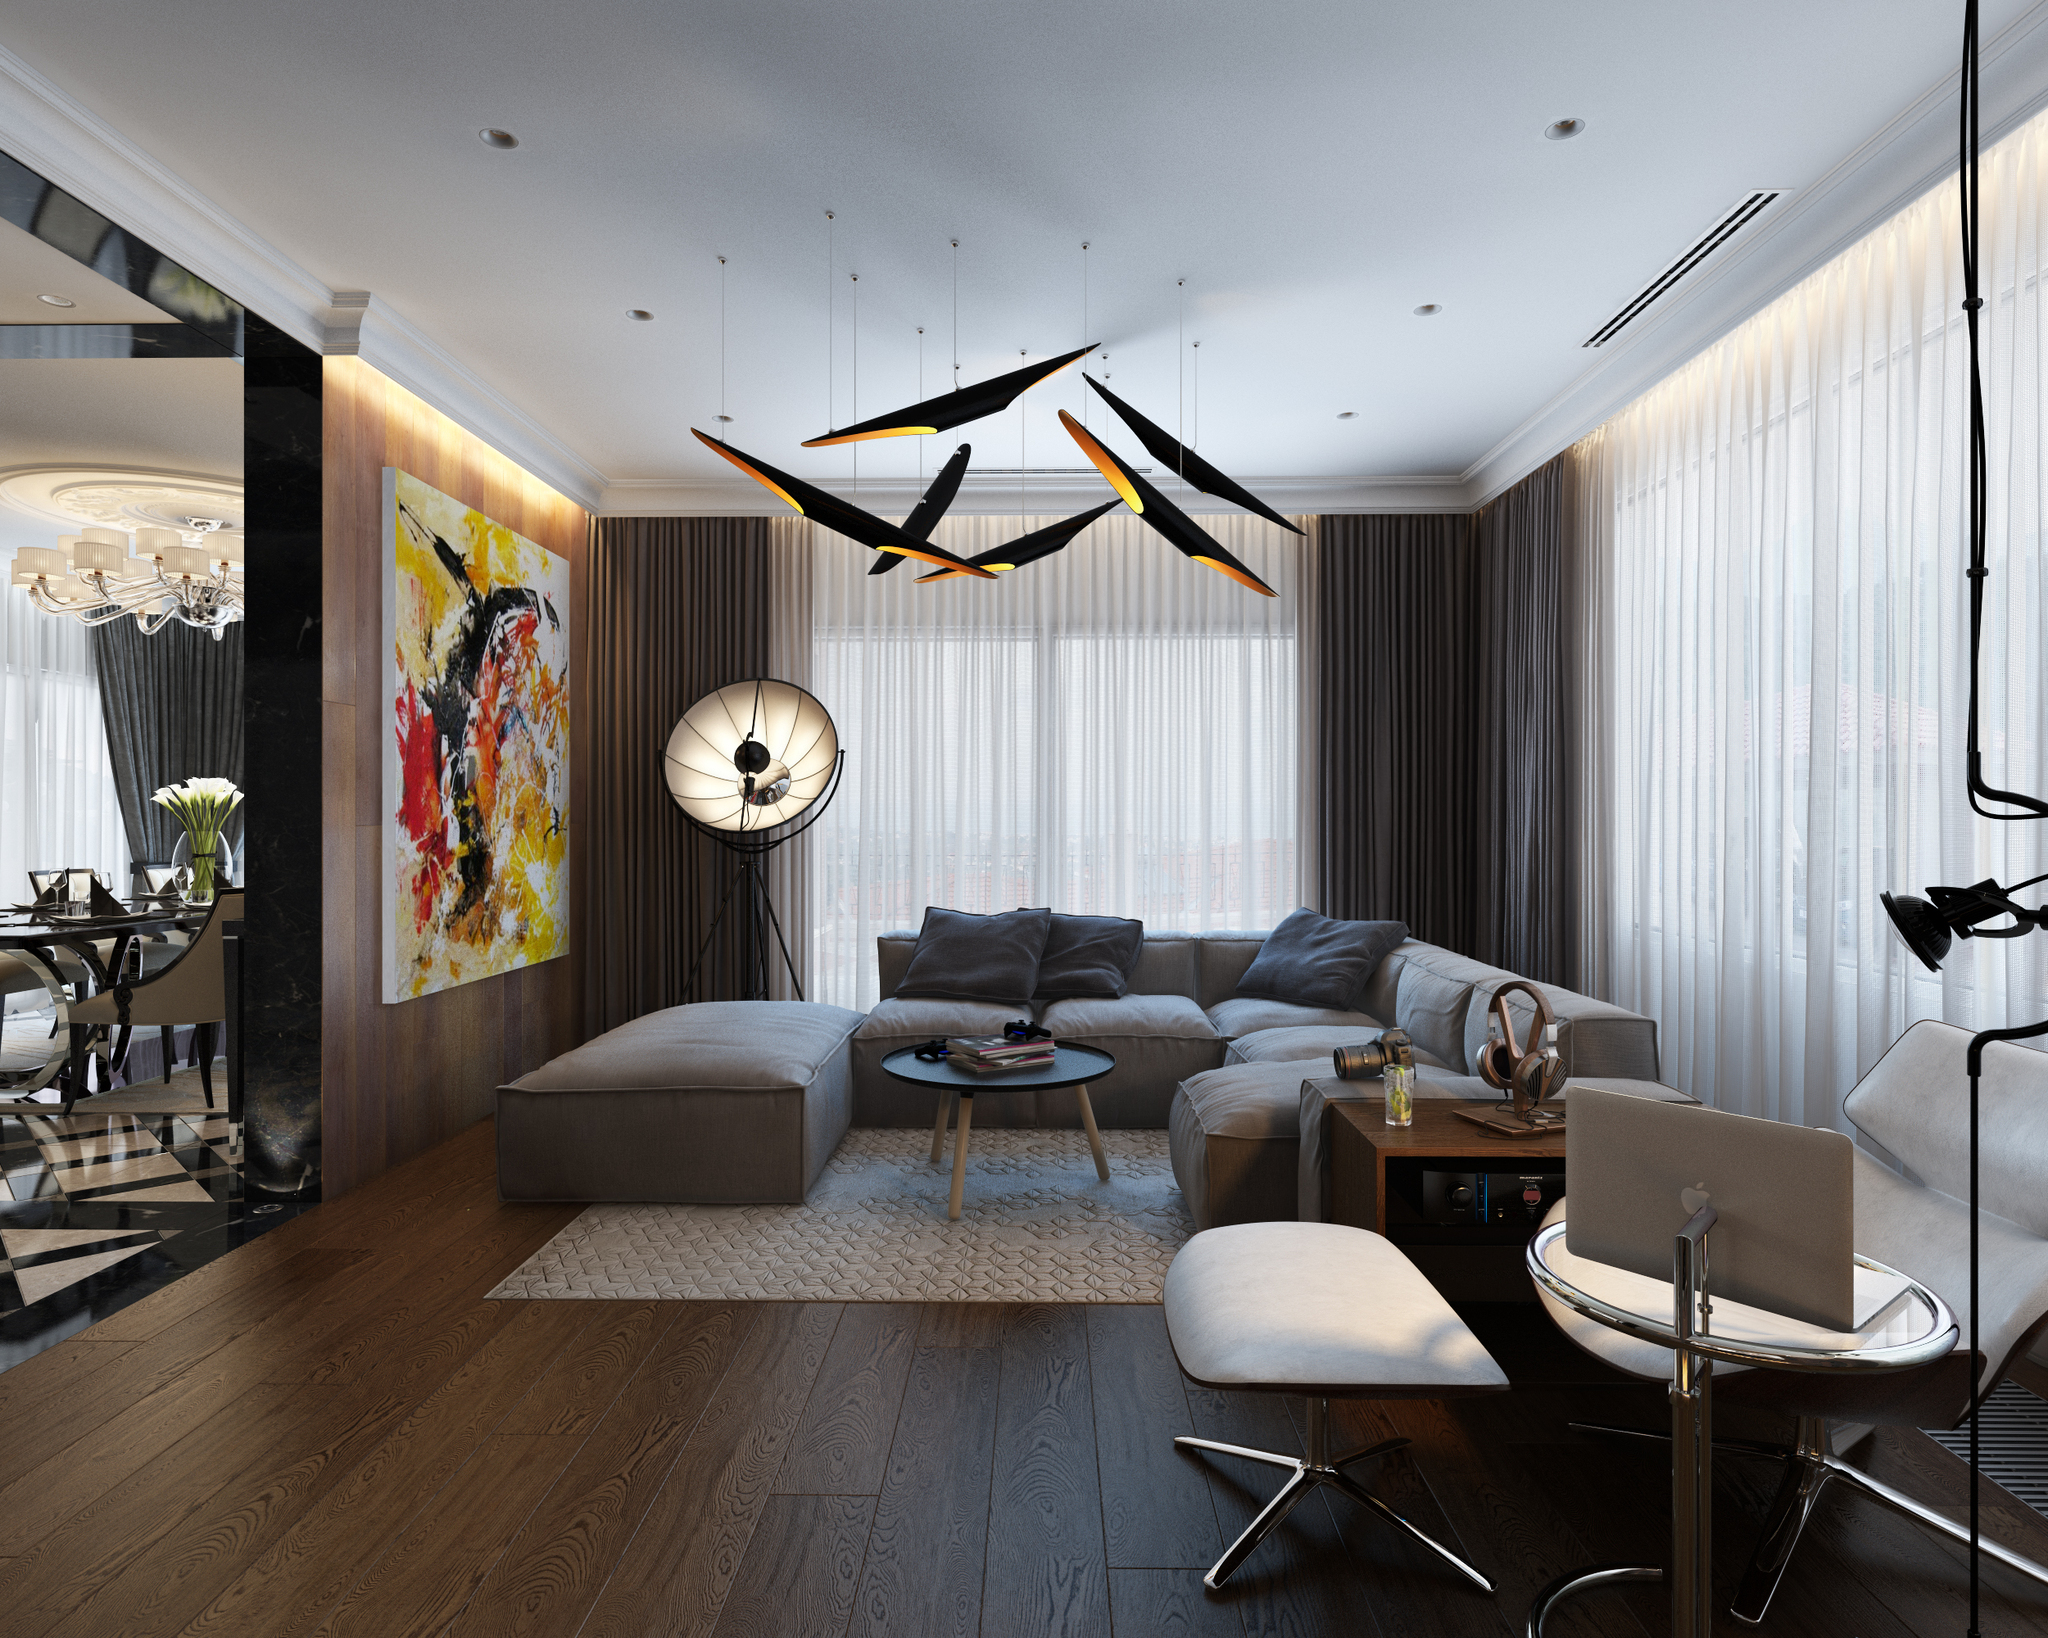 What Have These Lighting Designs In Common 3 lighting designs What Have These Lighting Designs In Common? What Have These Lighting Designs In Common 3